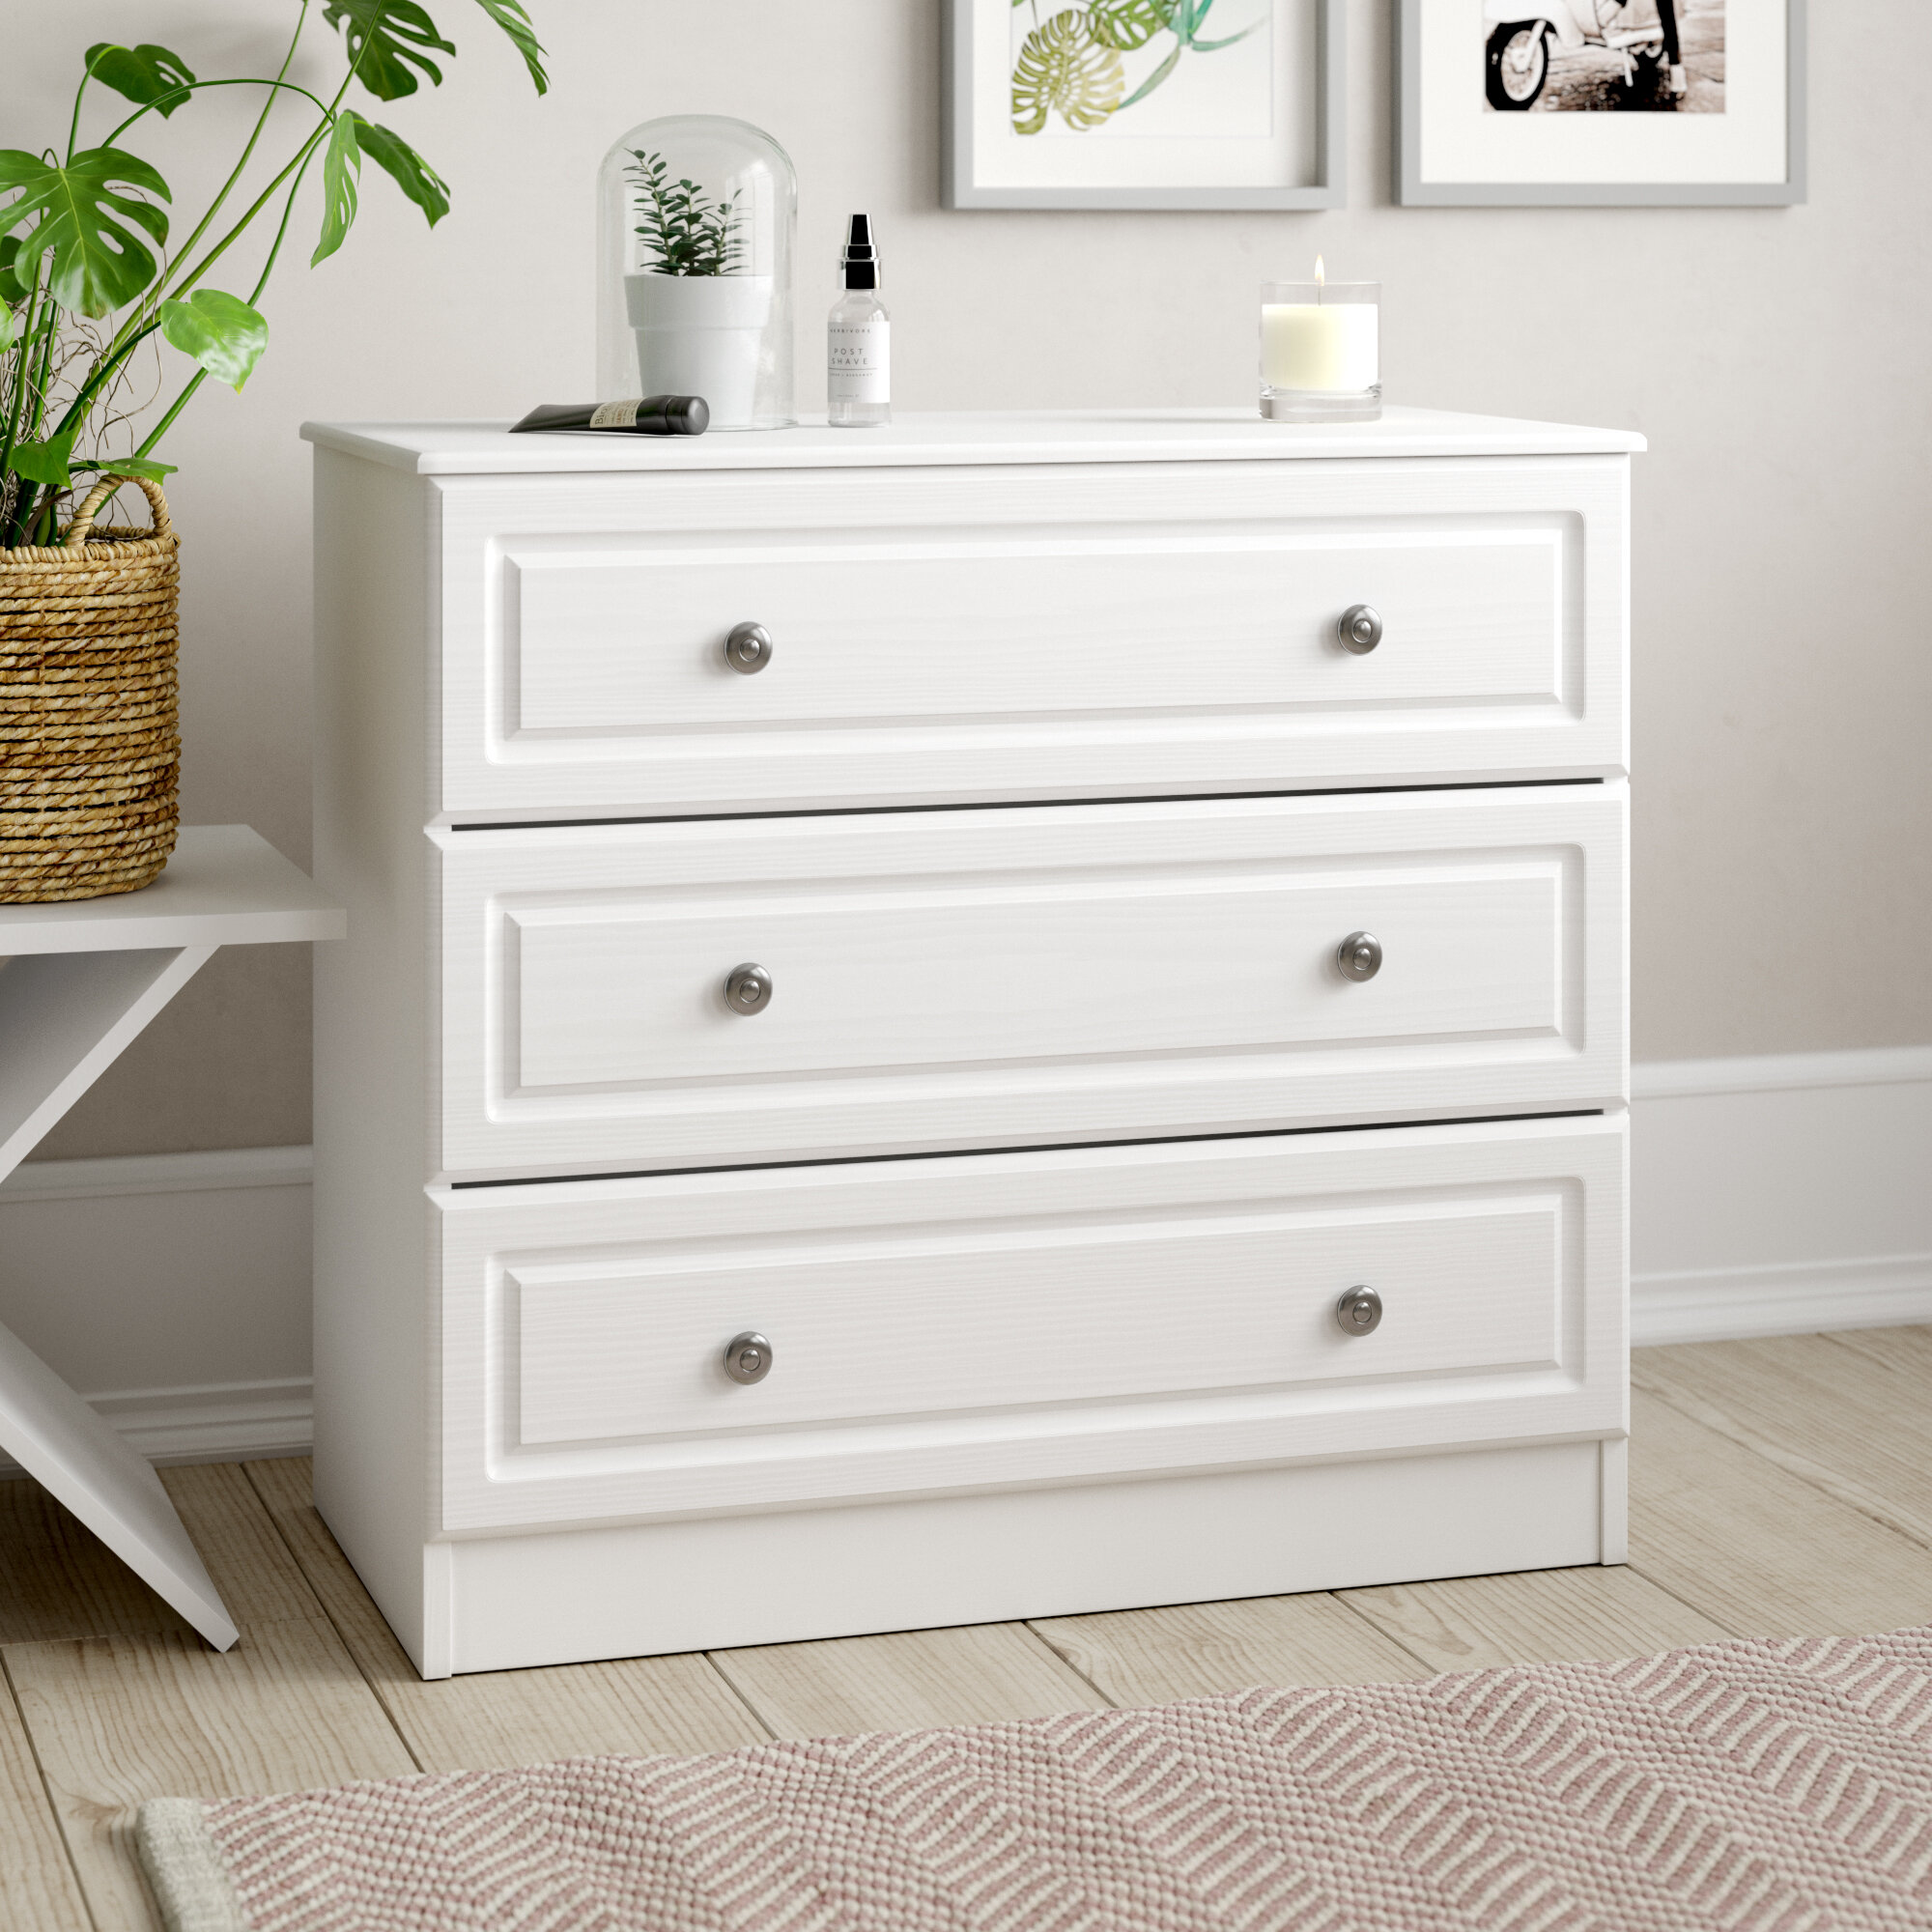 Hampshire 3 Drawer Chest Of Drawers